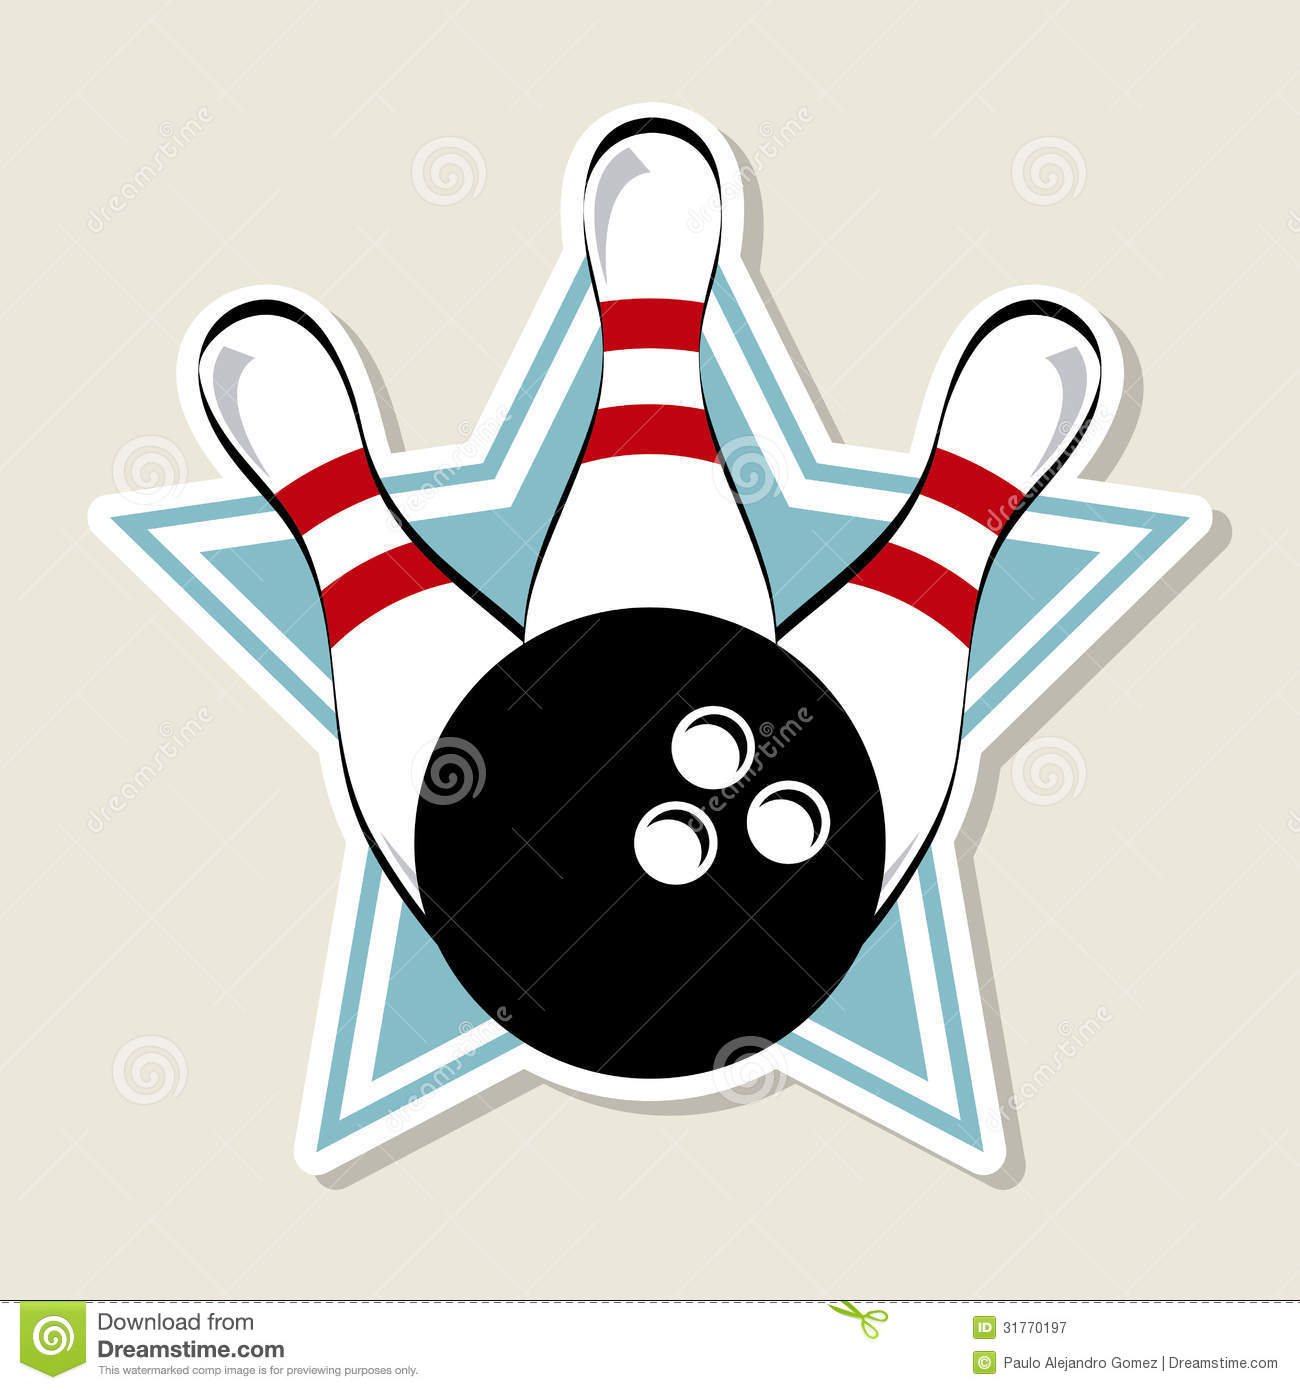 Bowling Label Royalty Free Stock Photography - Image: 31770197